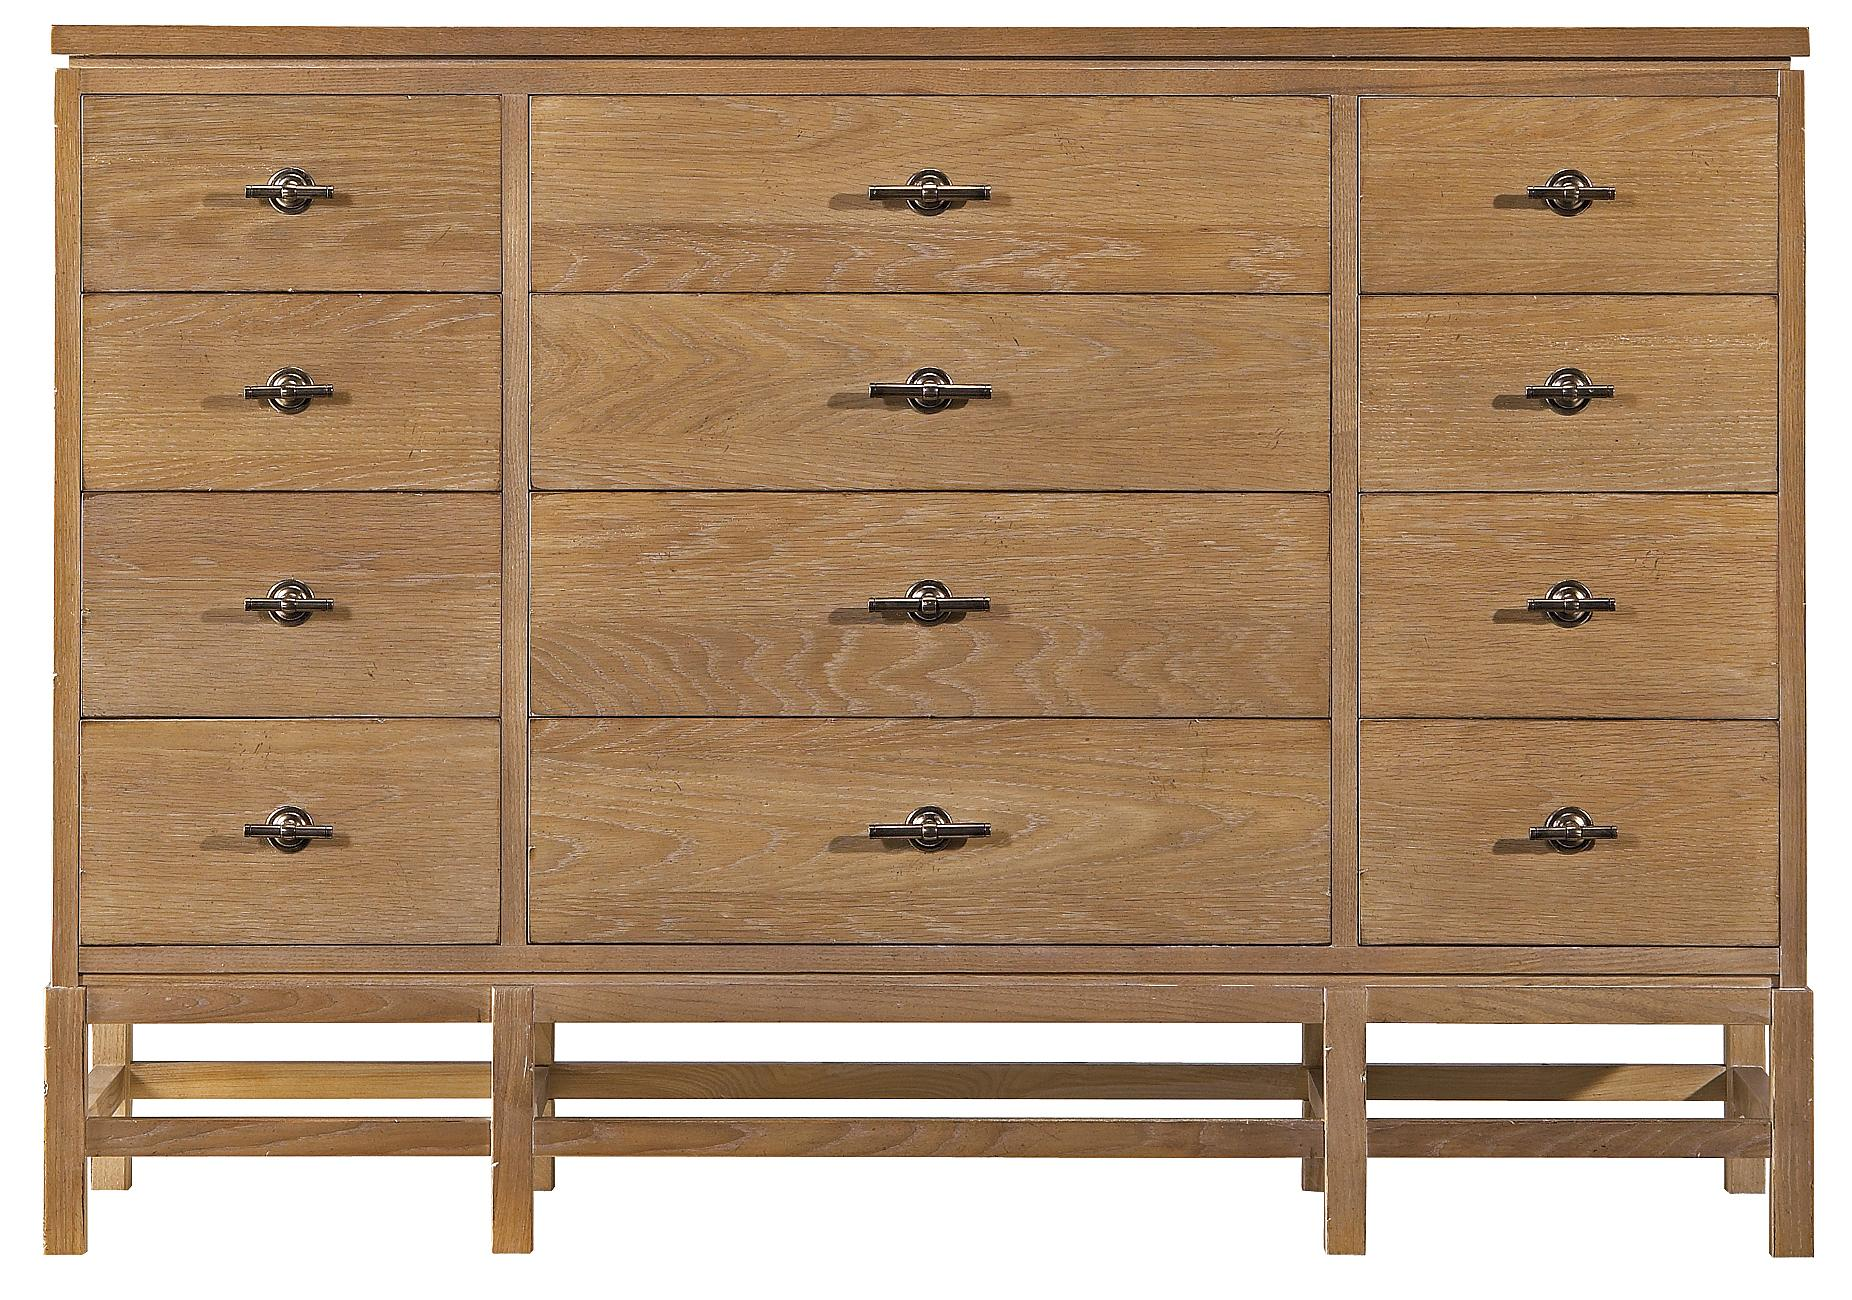 Stanley Furniture Coastal Living Resort Tranquility Isle Dresser - Item Number: 062-63-06